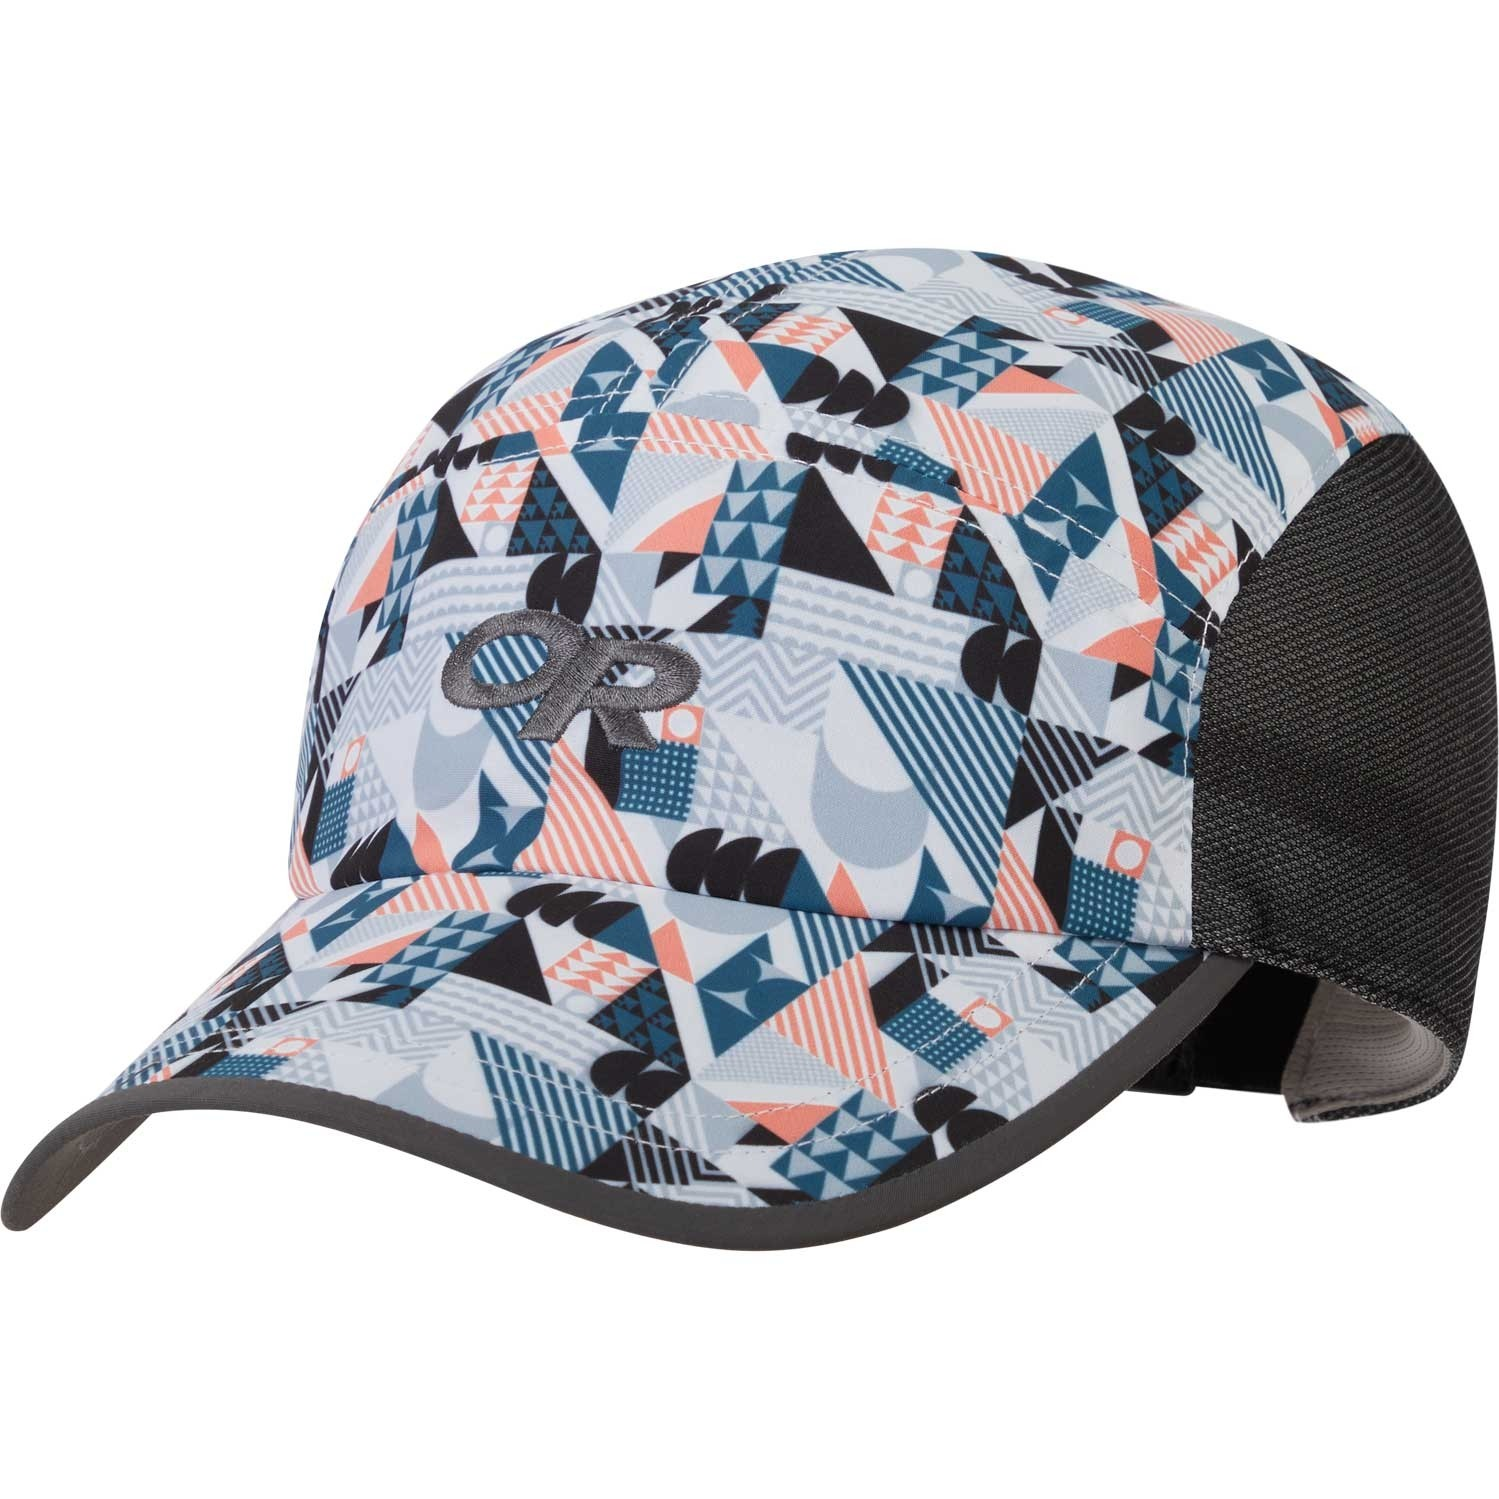 OUTDOOR RESEARCH - Swift Cap - Geoshapes Print